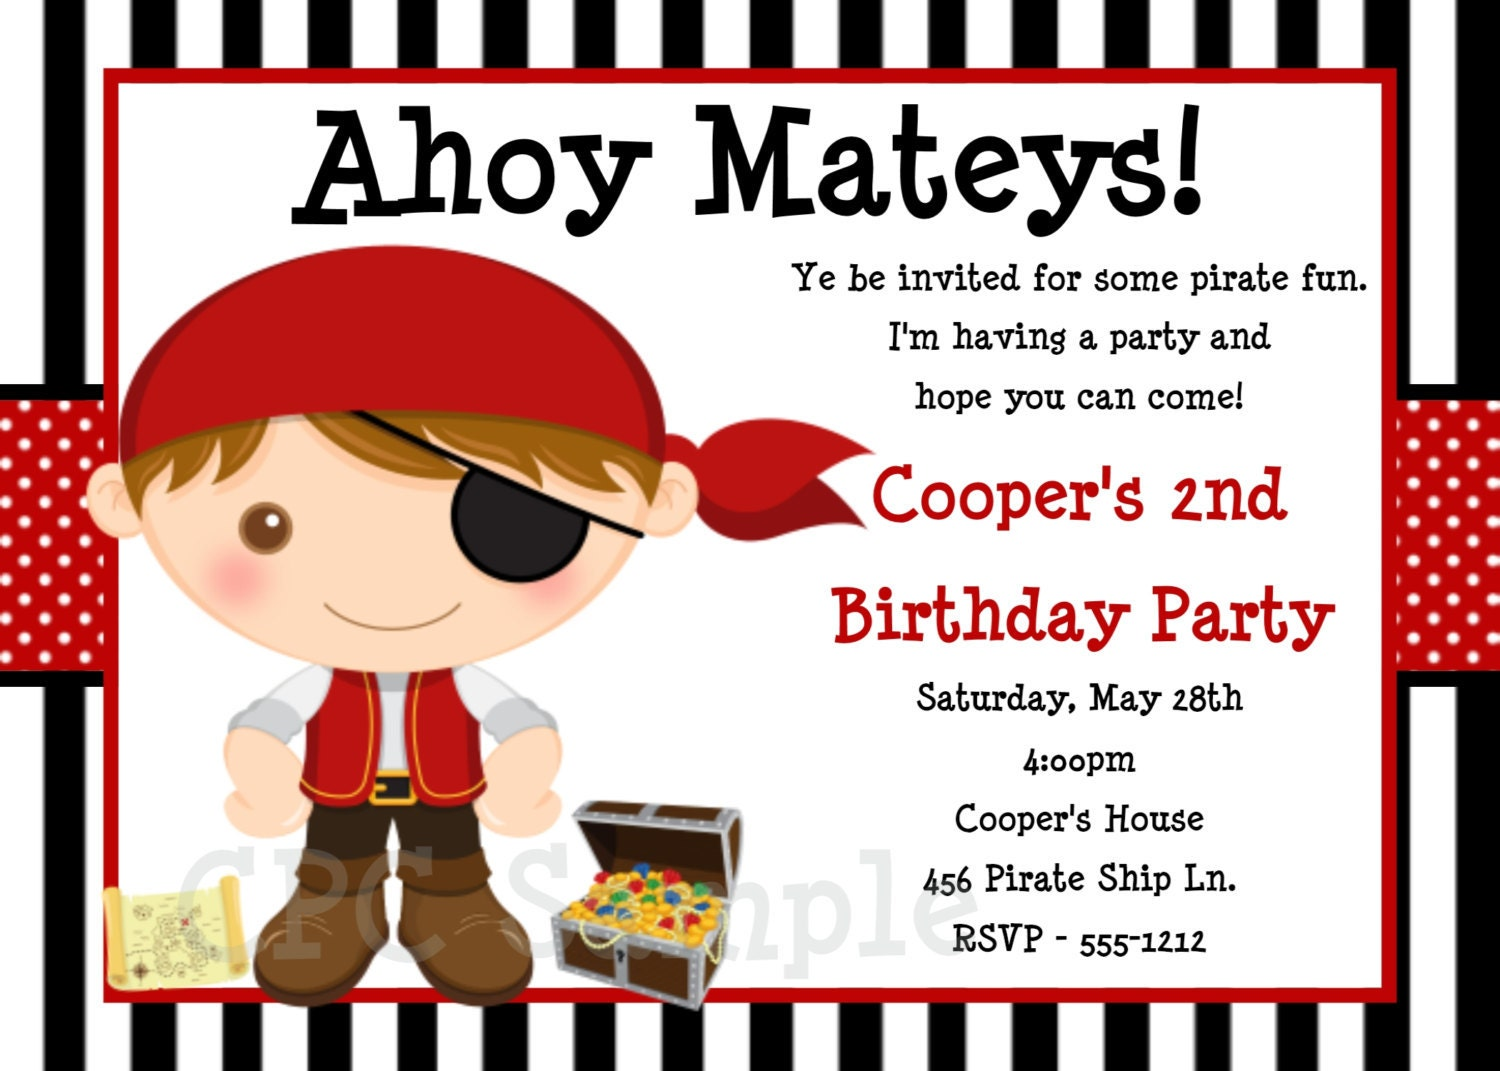 Pirate Birthday Invitation Pirate Party Invitations – Pirate Party Invites